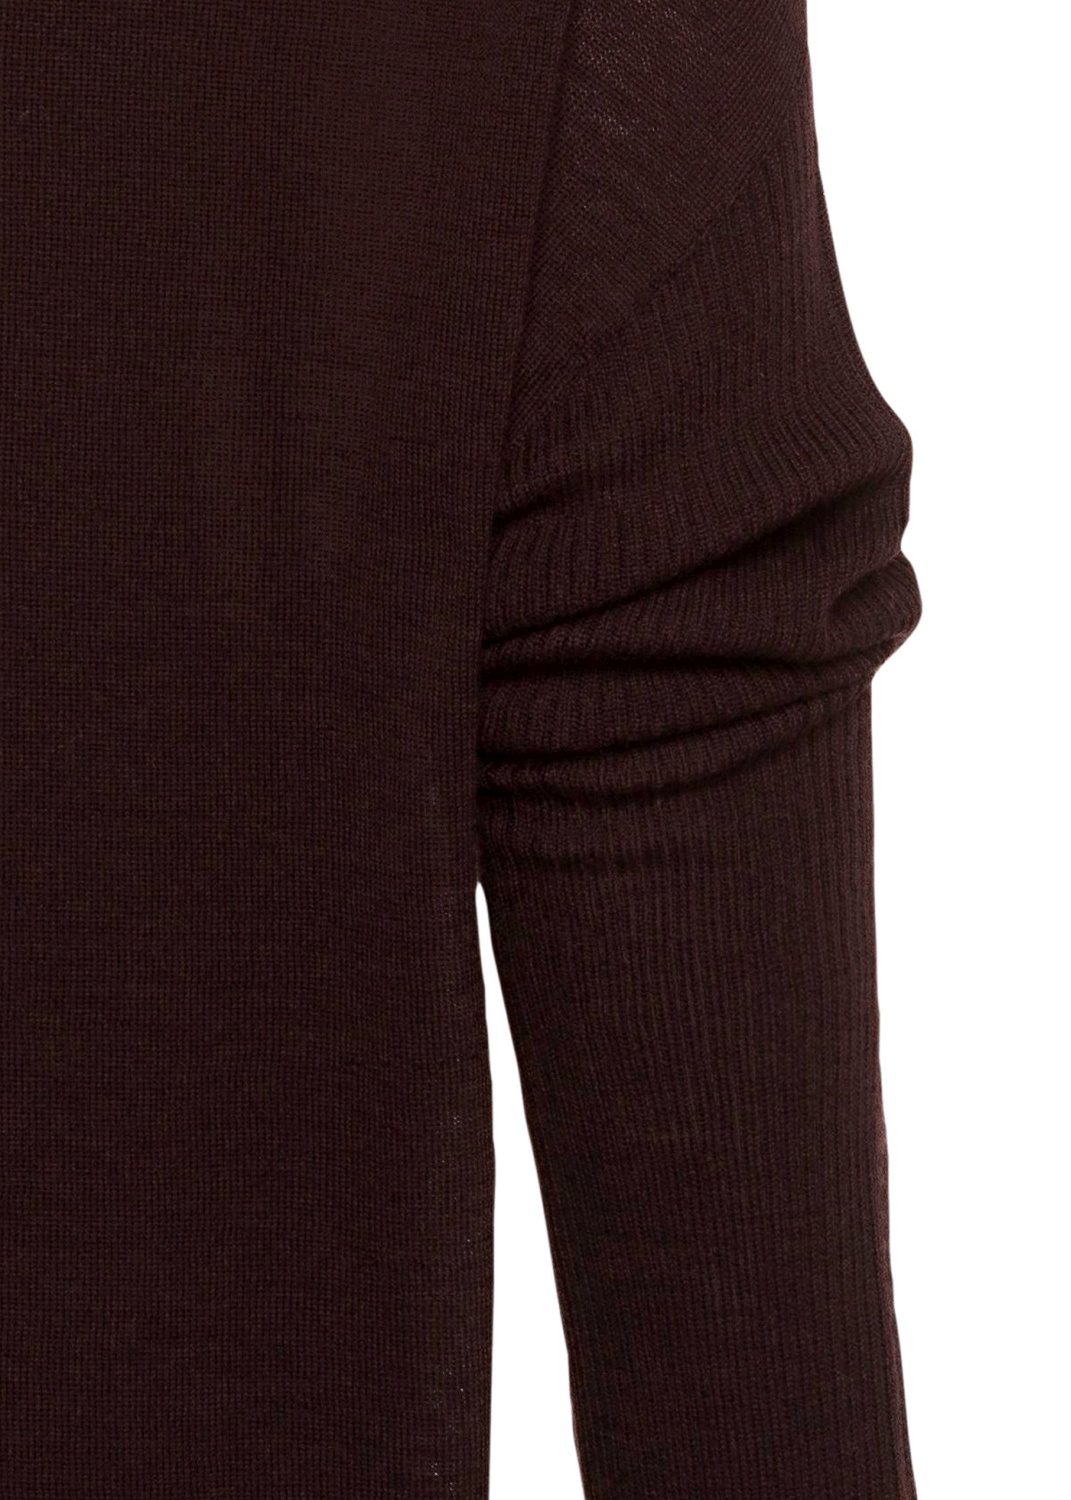 MAGLIA - CRATER KNIT image number 3